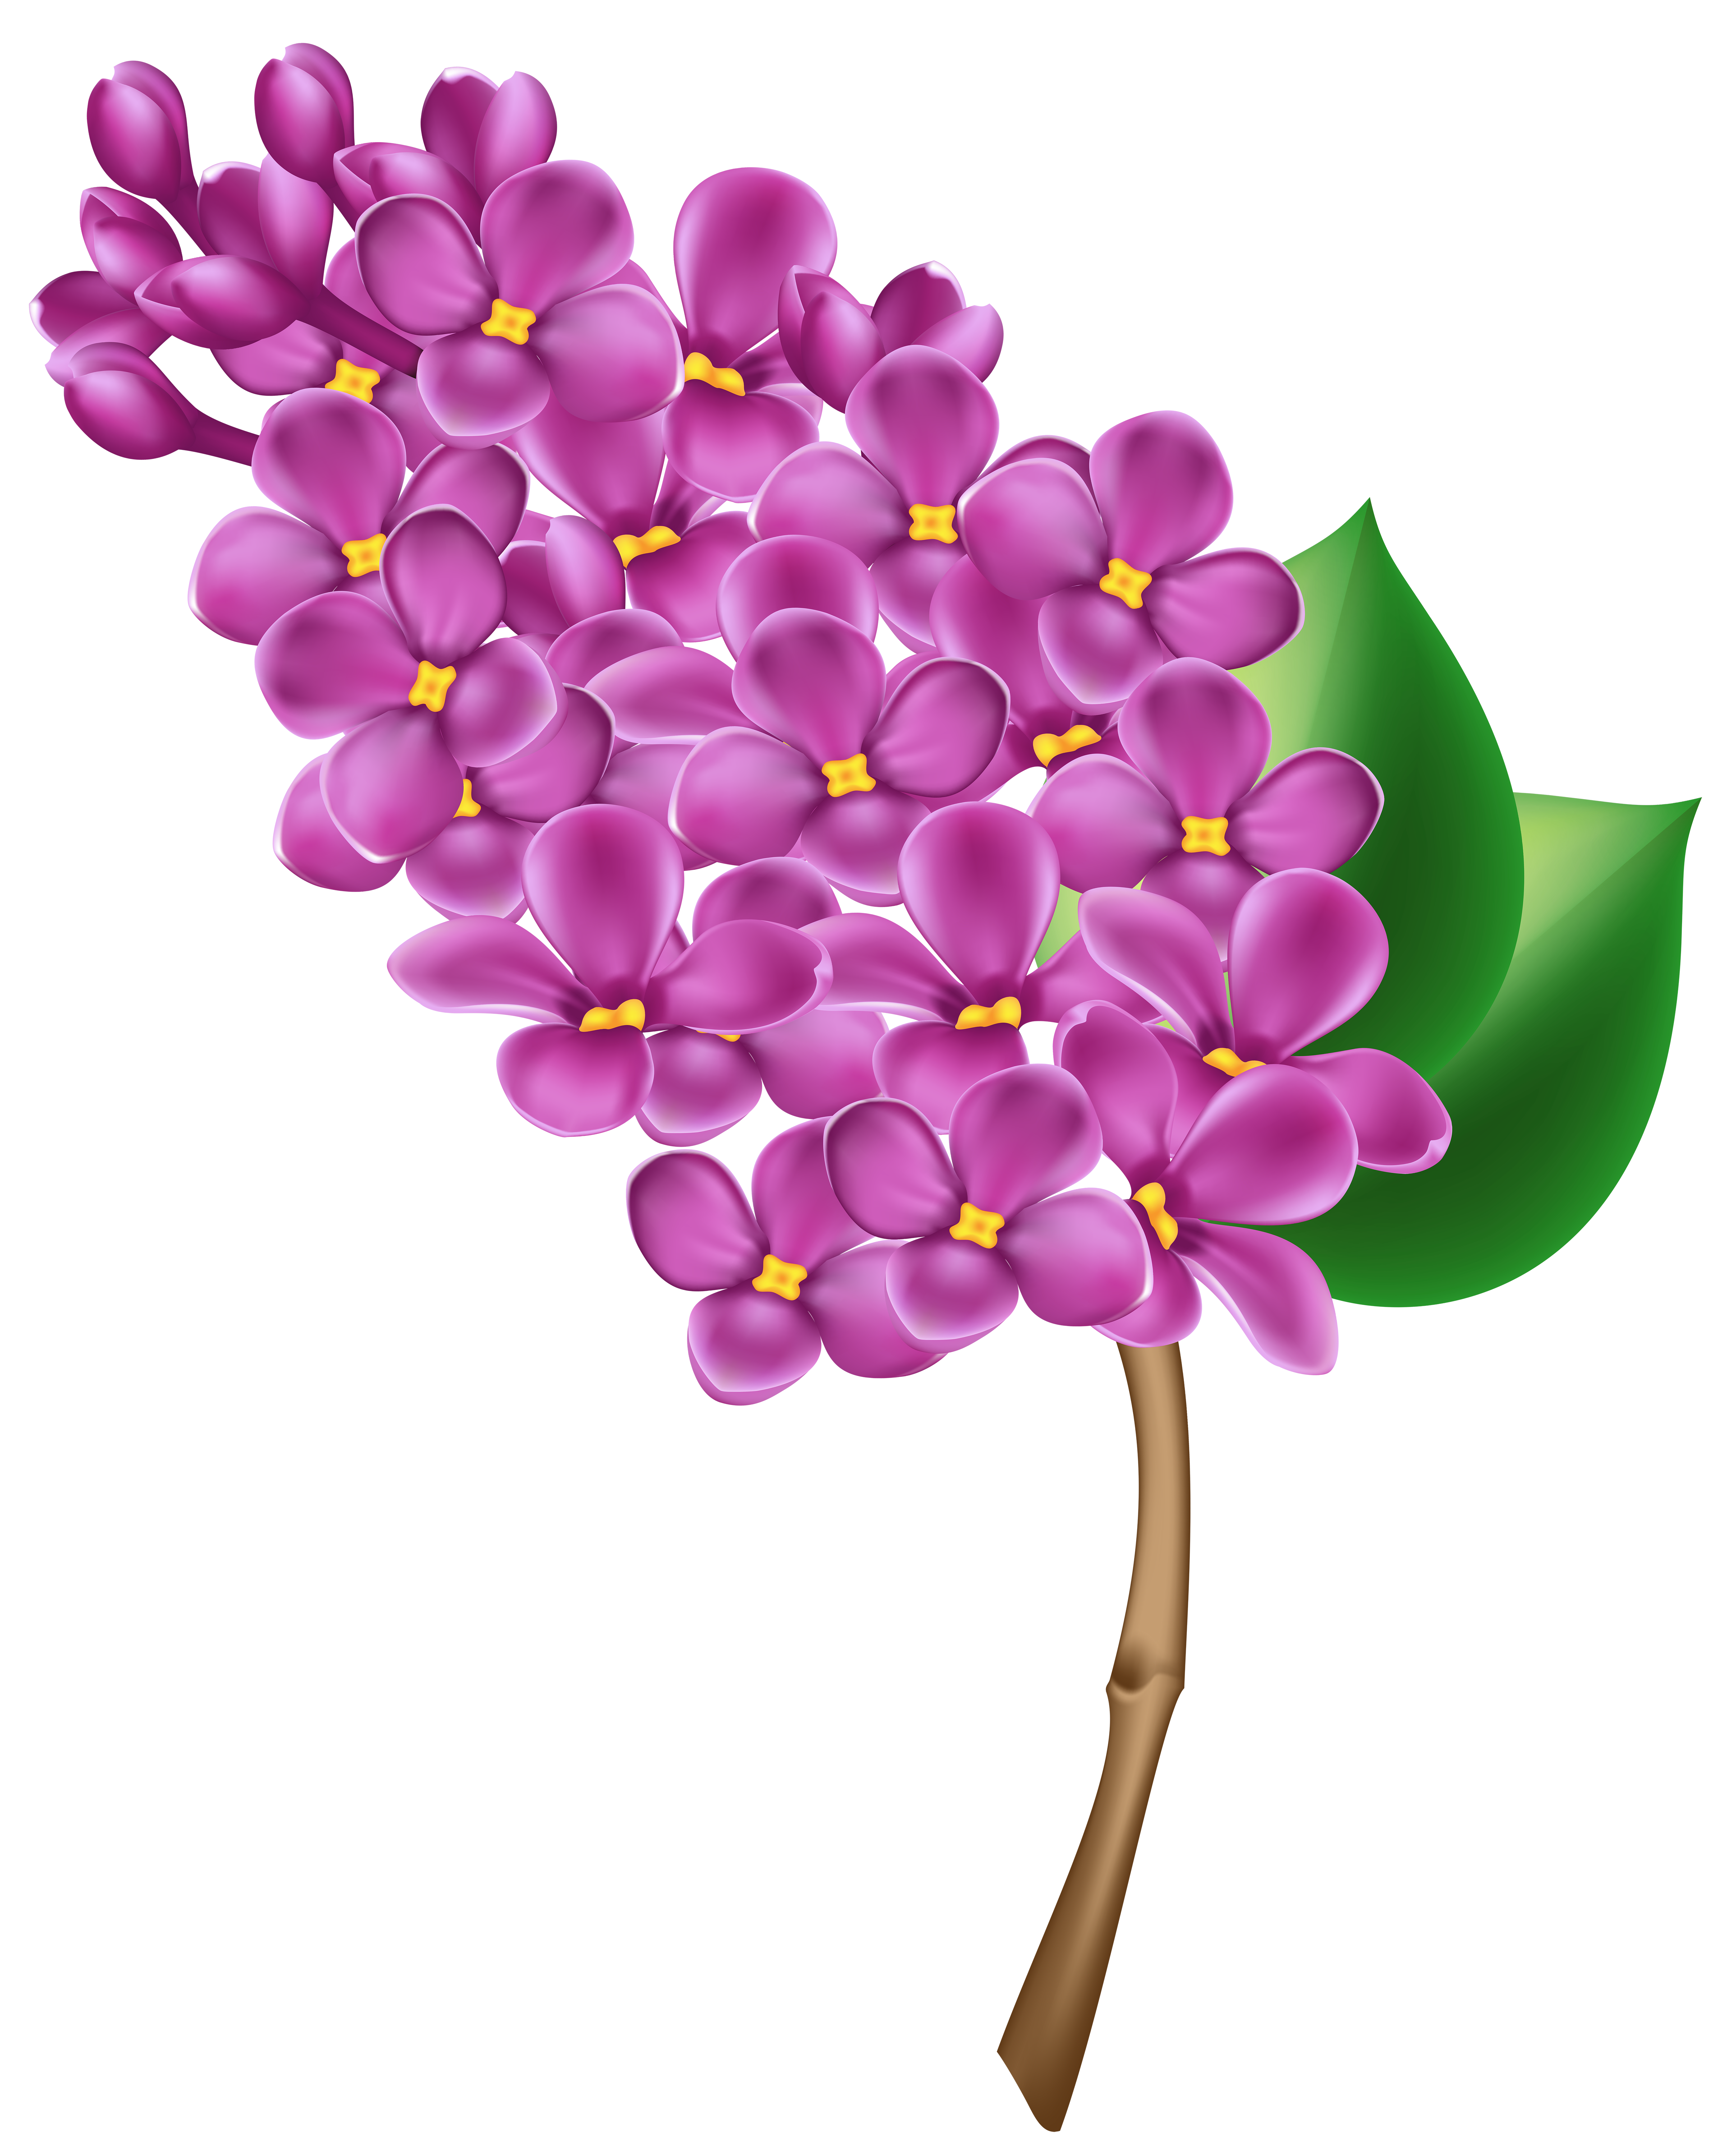 Lilac clipart #2, Download drawings